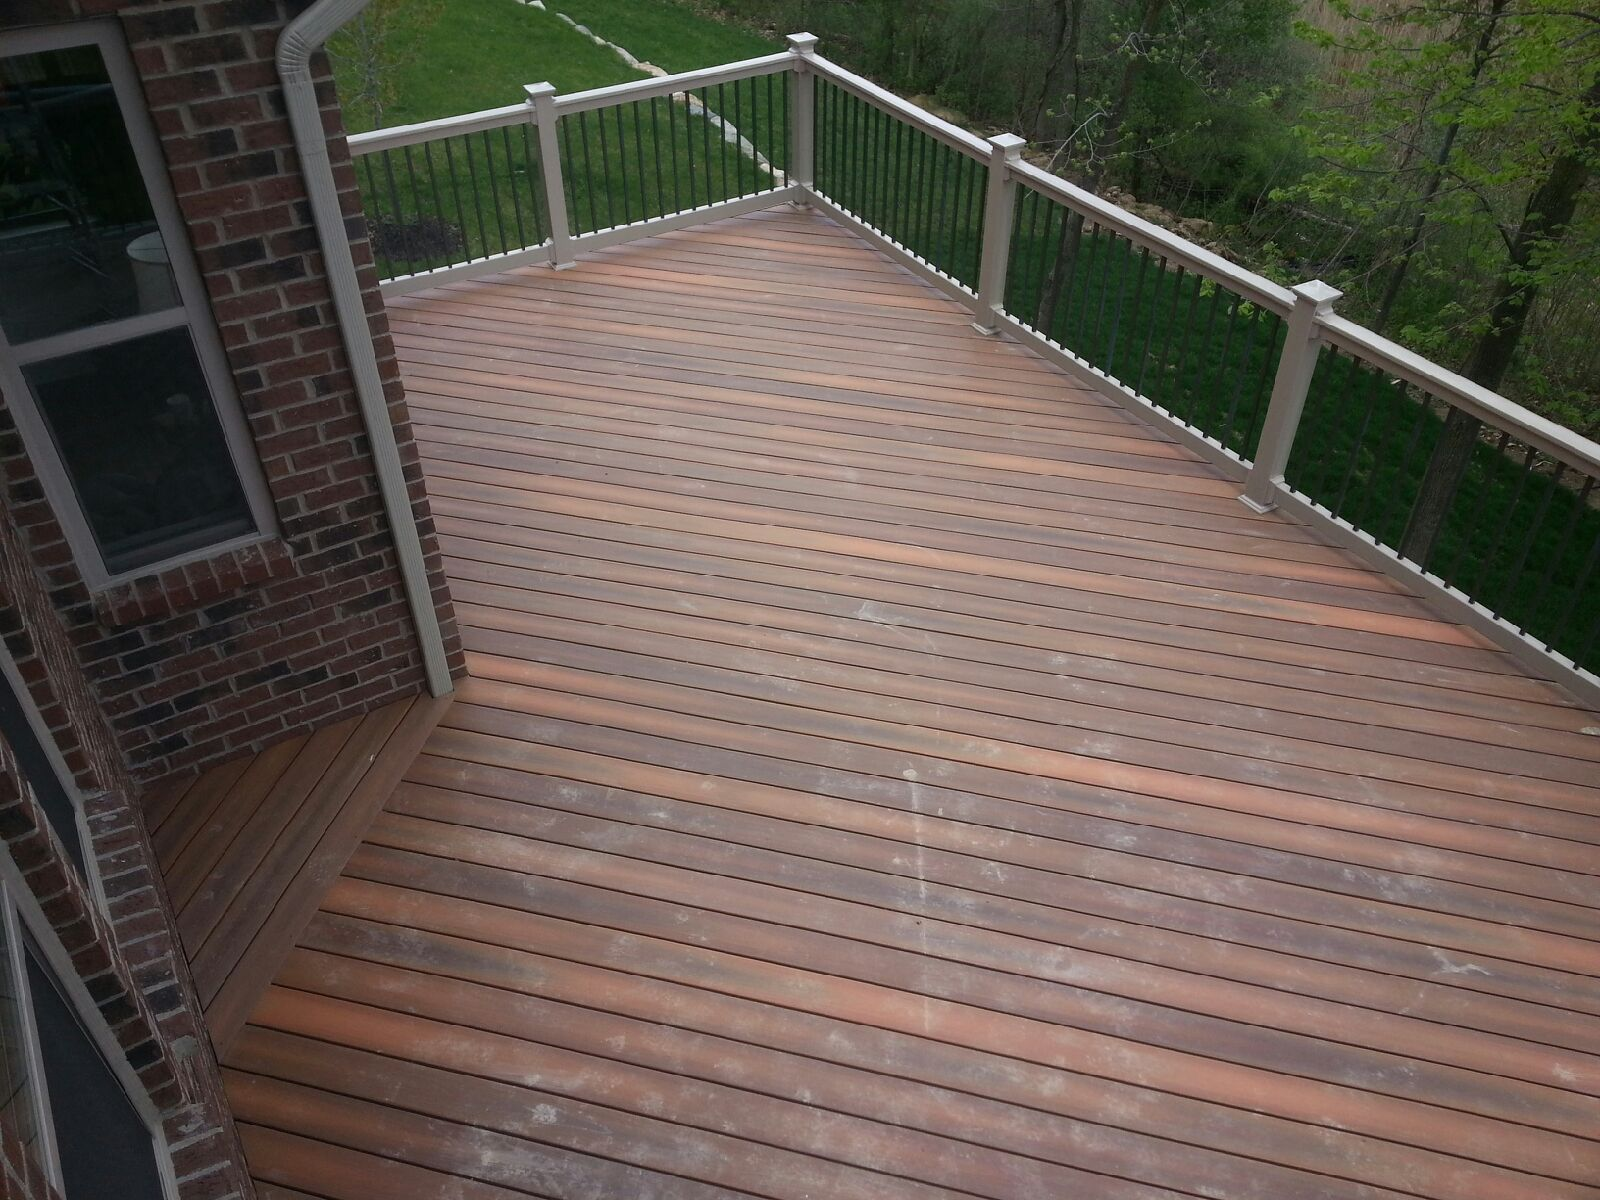 What is best material for deck decks fencing for Best decking material to use